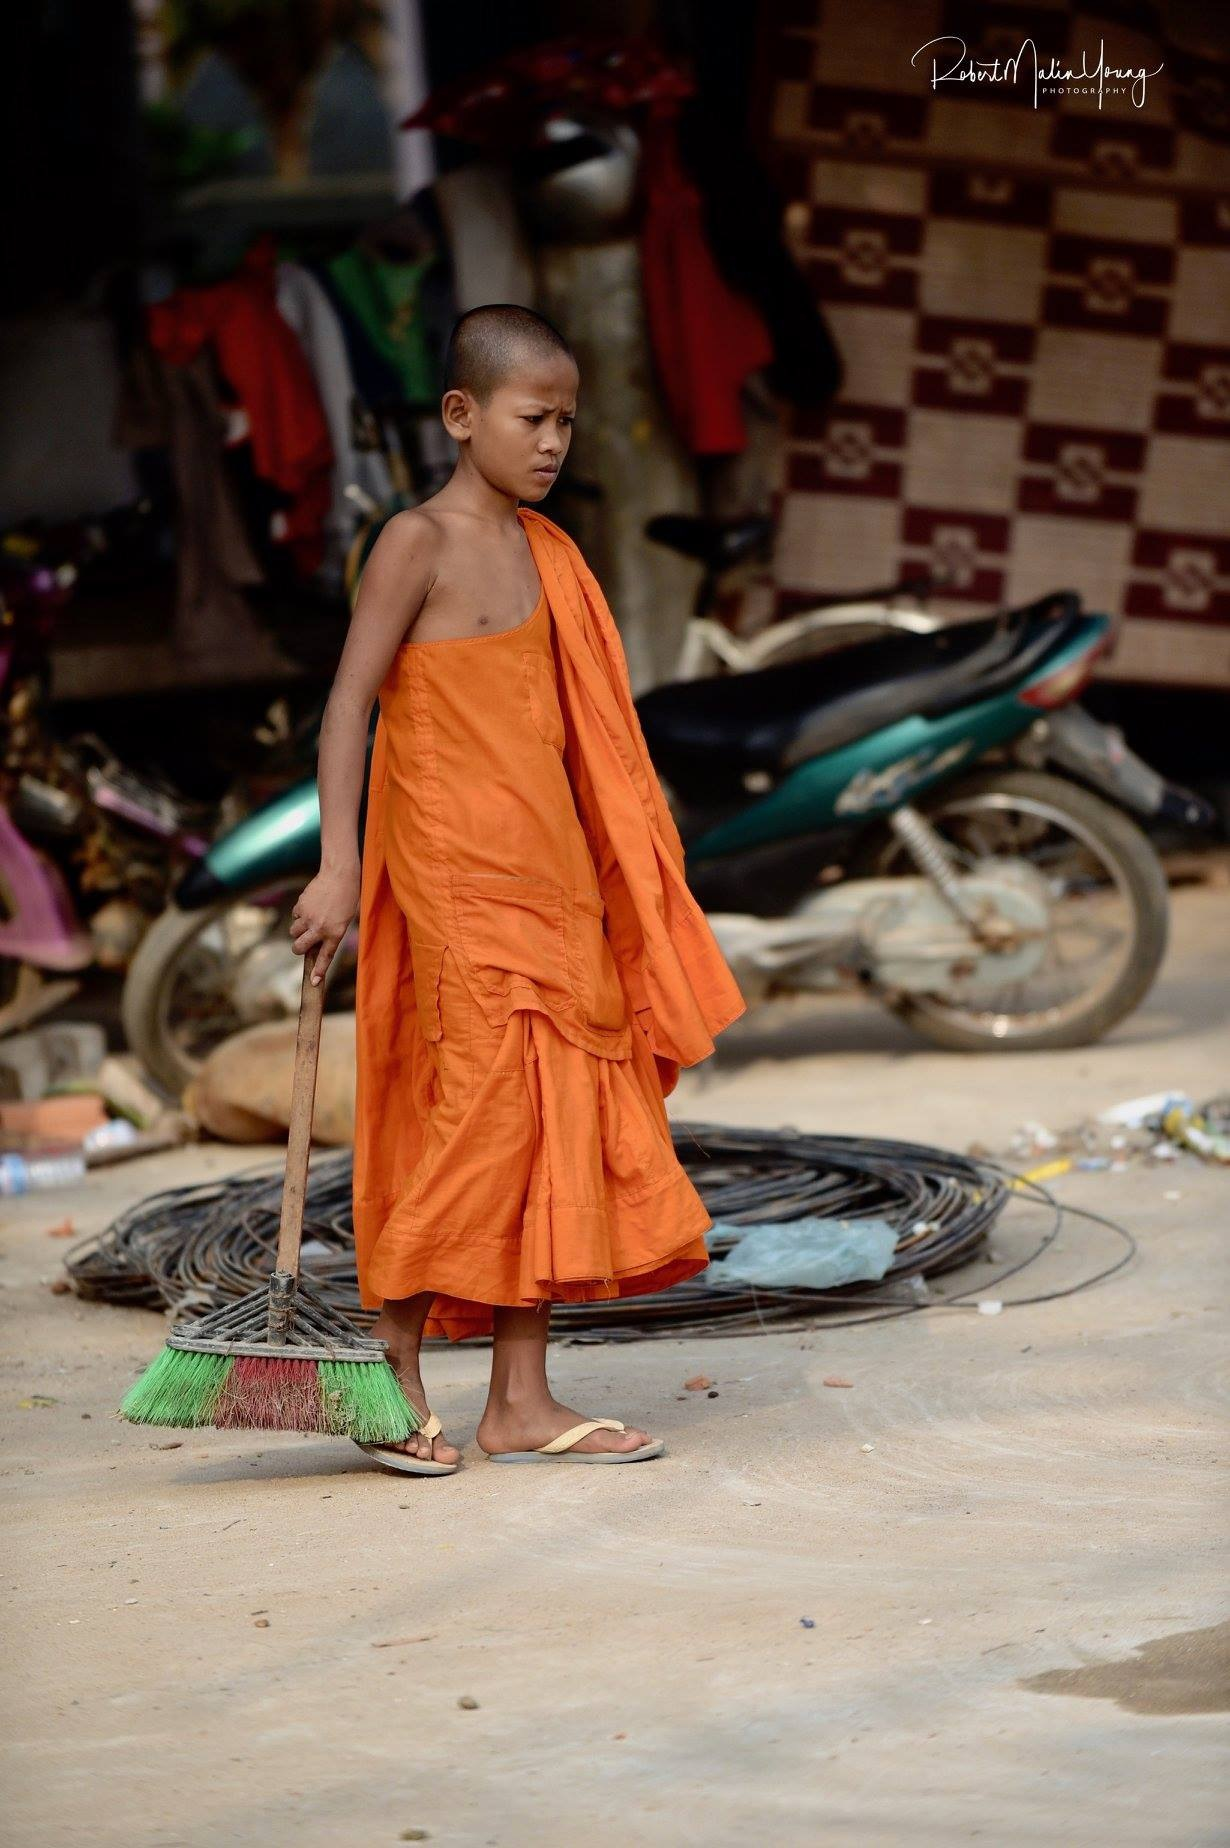 Cambodia - young monk - 2017 by Robert Malin Young